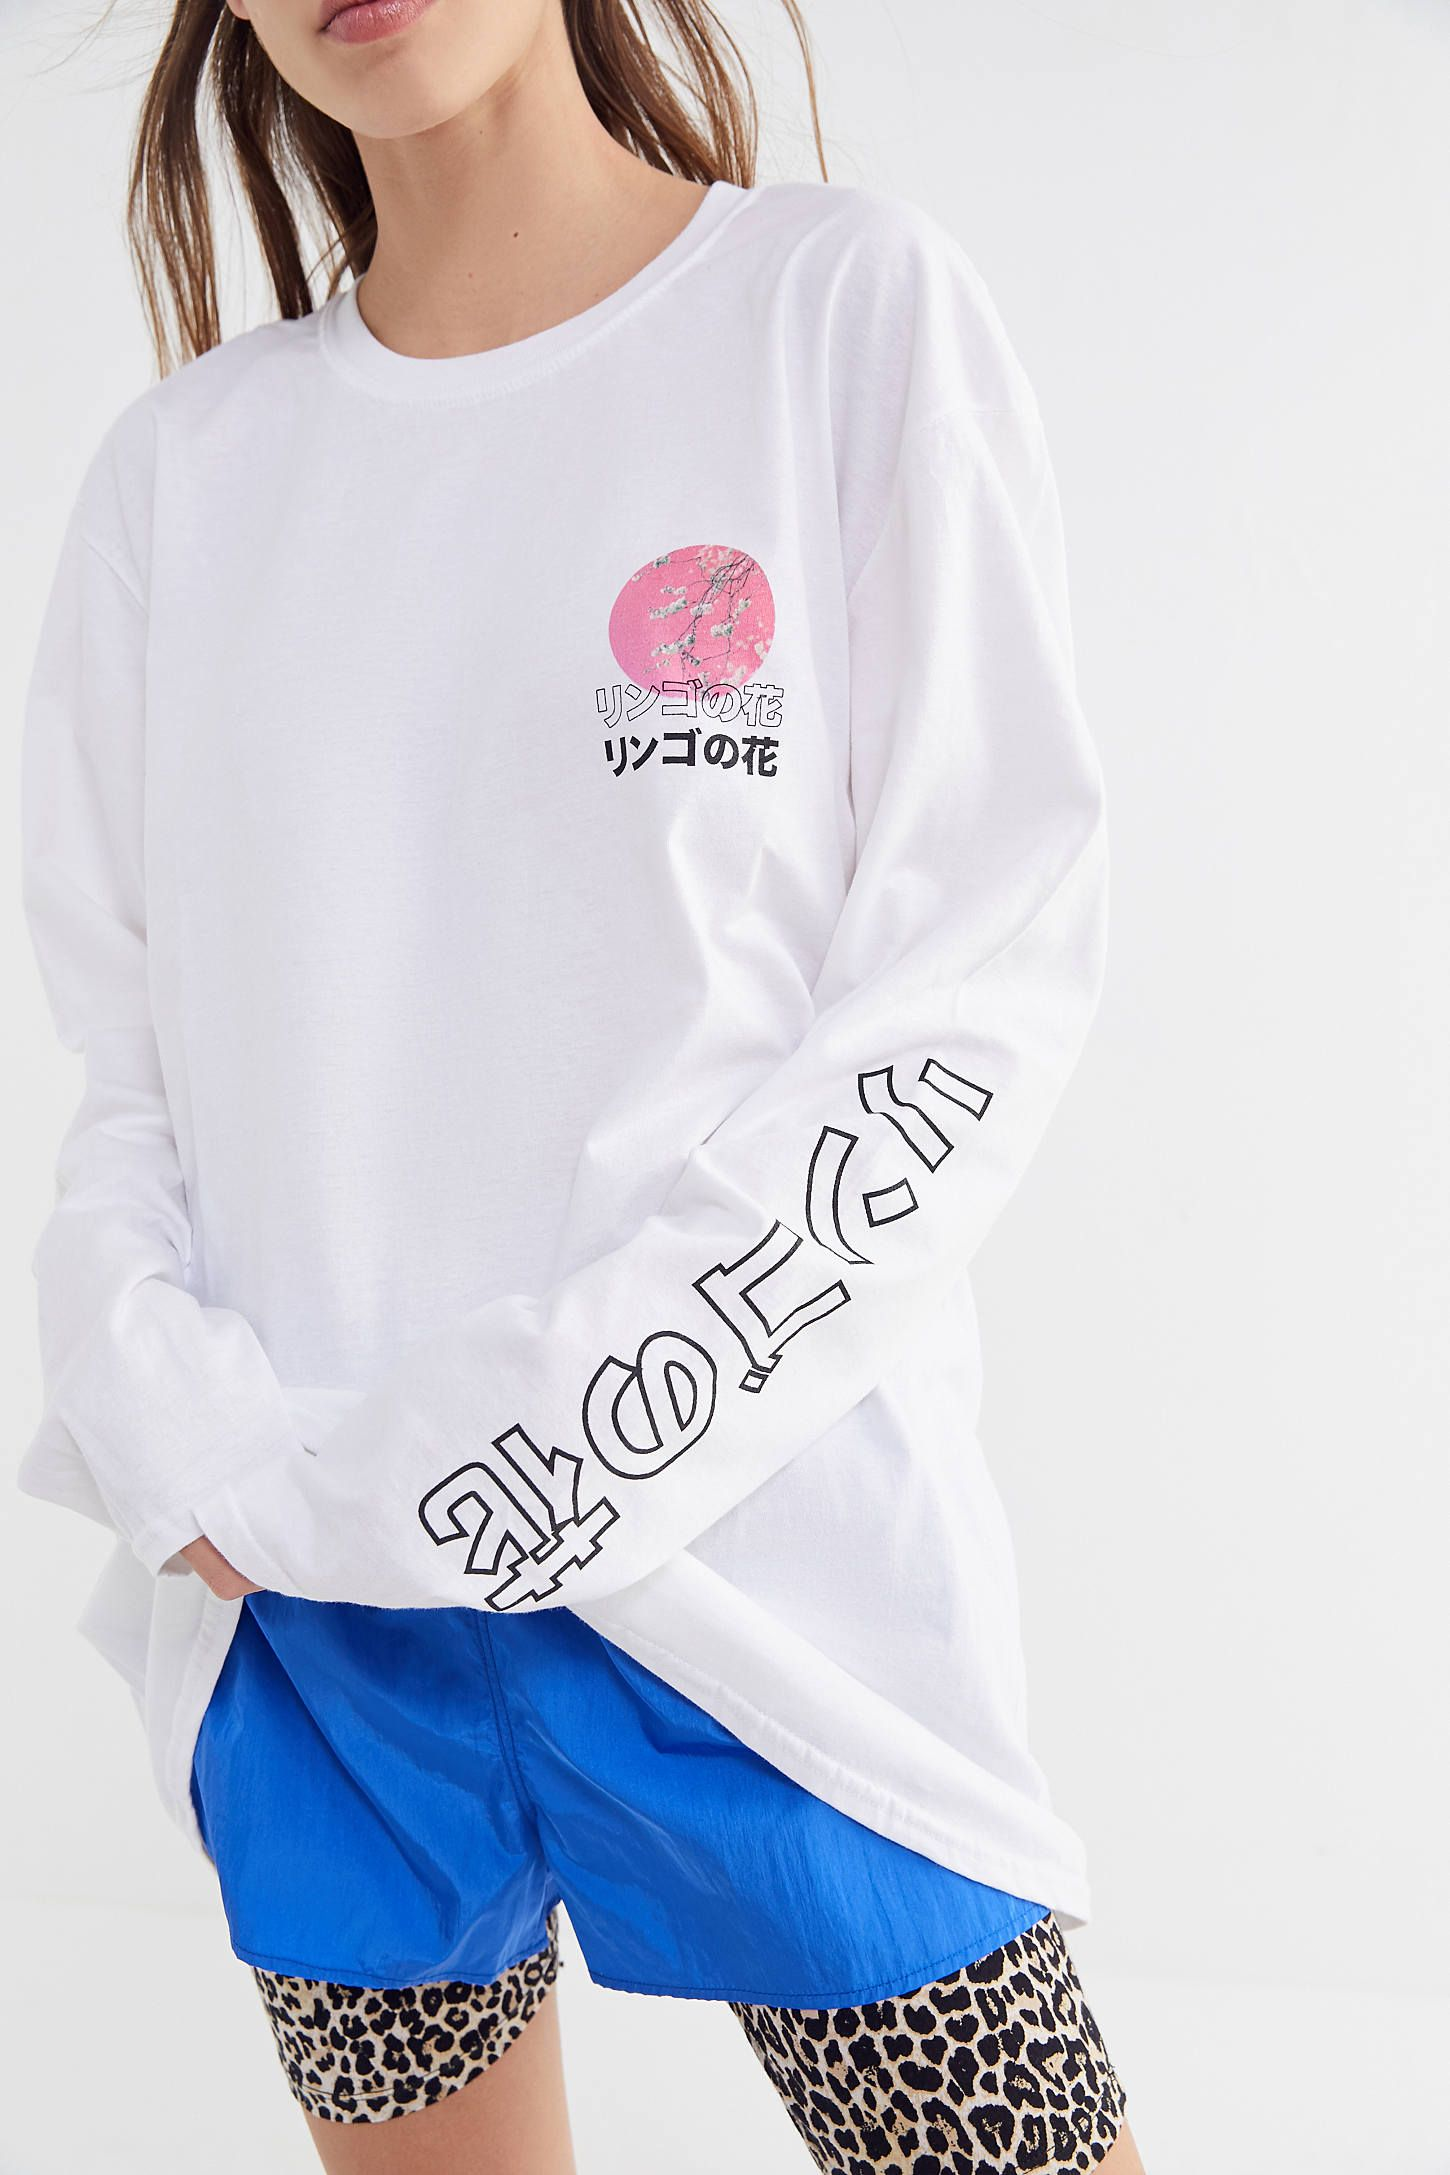 fe747ac52f679 Apple Blossom Long Sleeve Tee in 2019